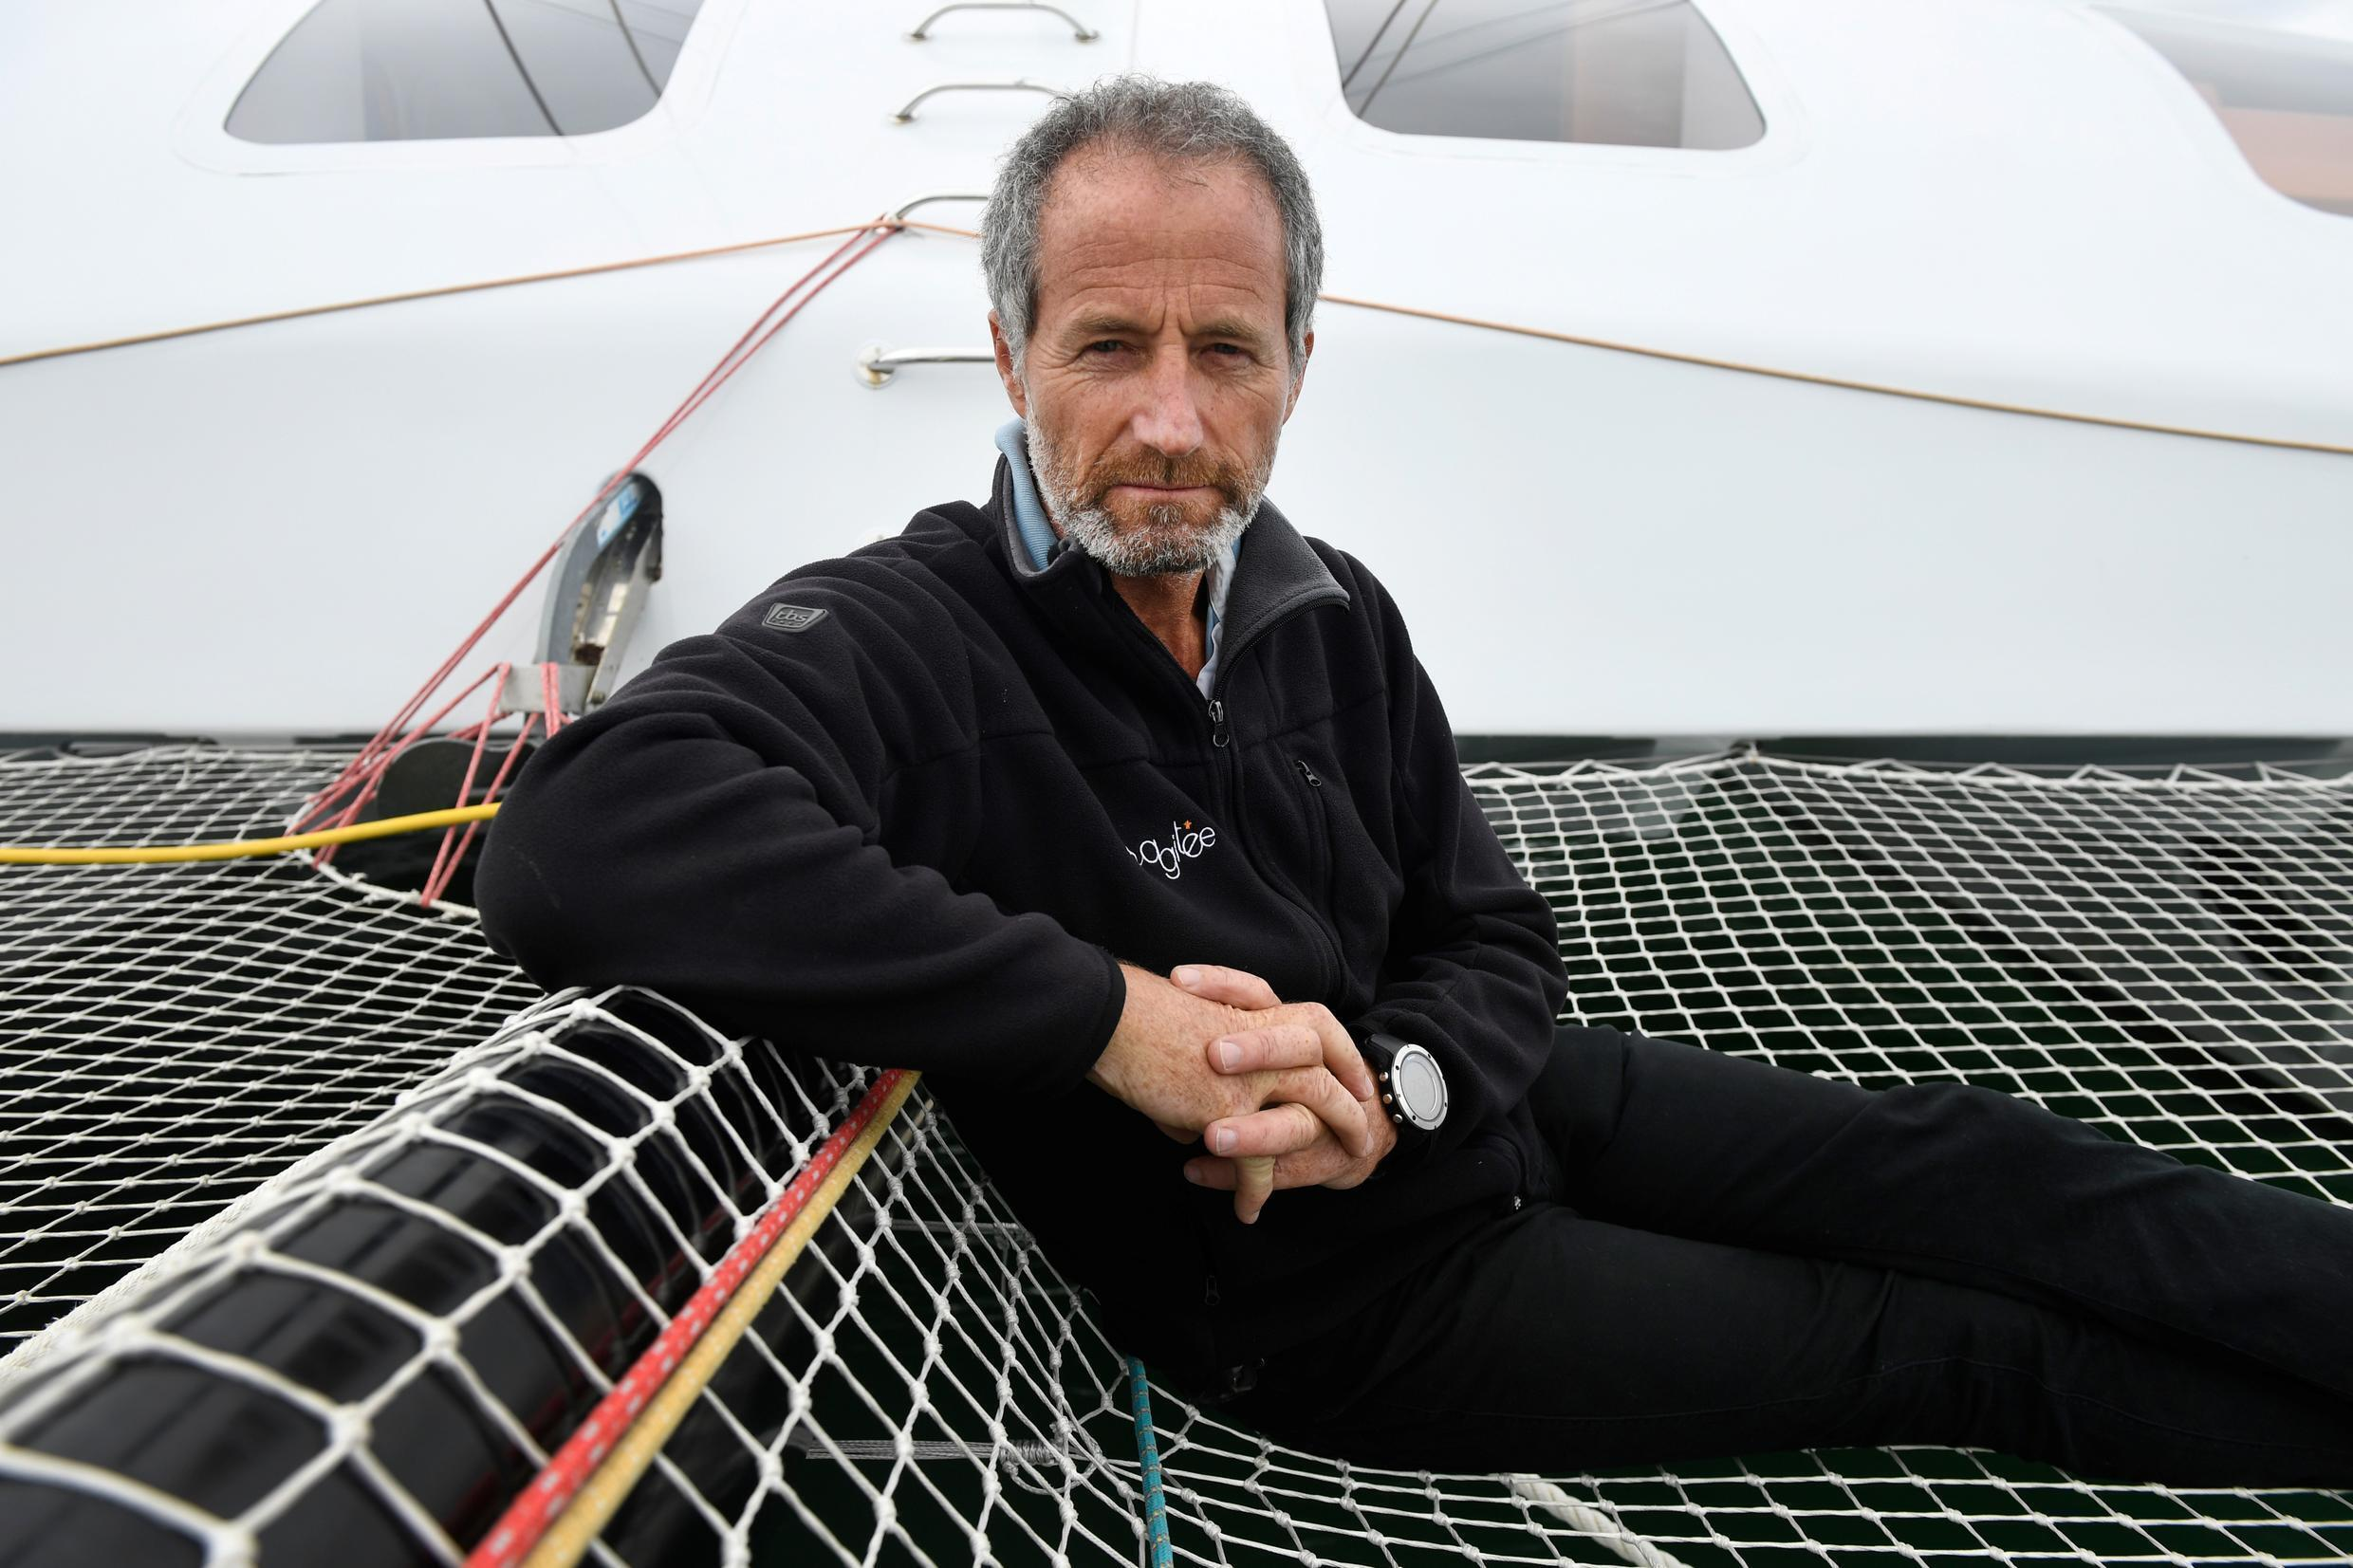 Michel Desjoyeaux, a two-time winner of the solo round the world Vendee Globe race, says sailing is much tougher than confinement